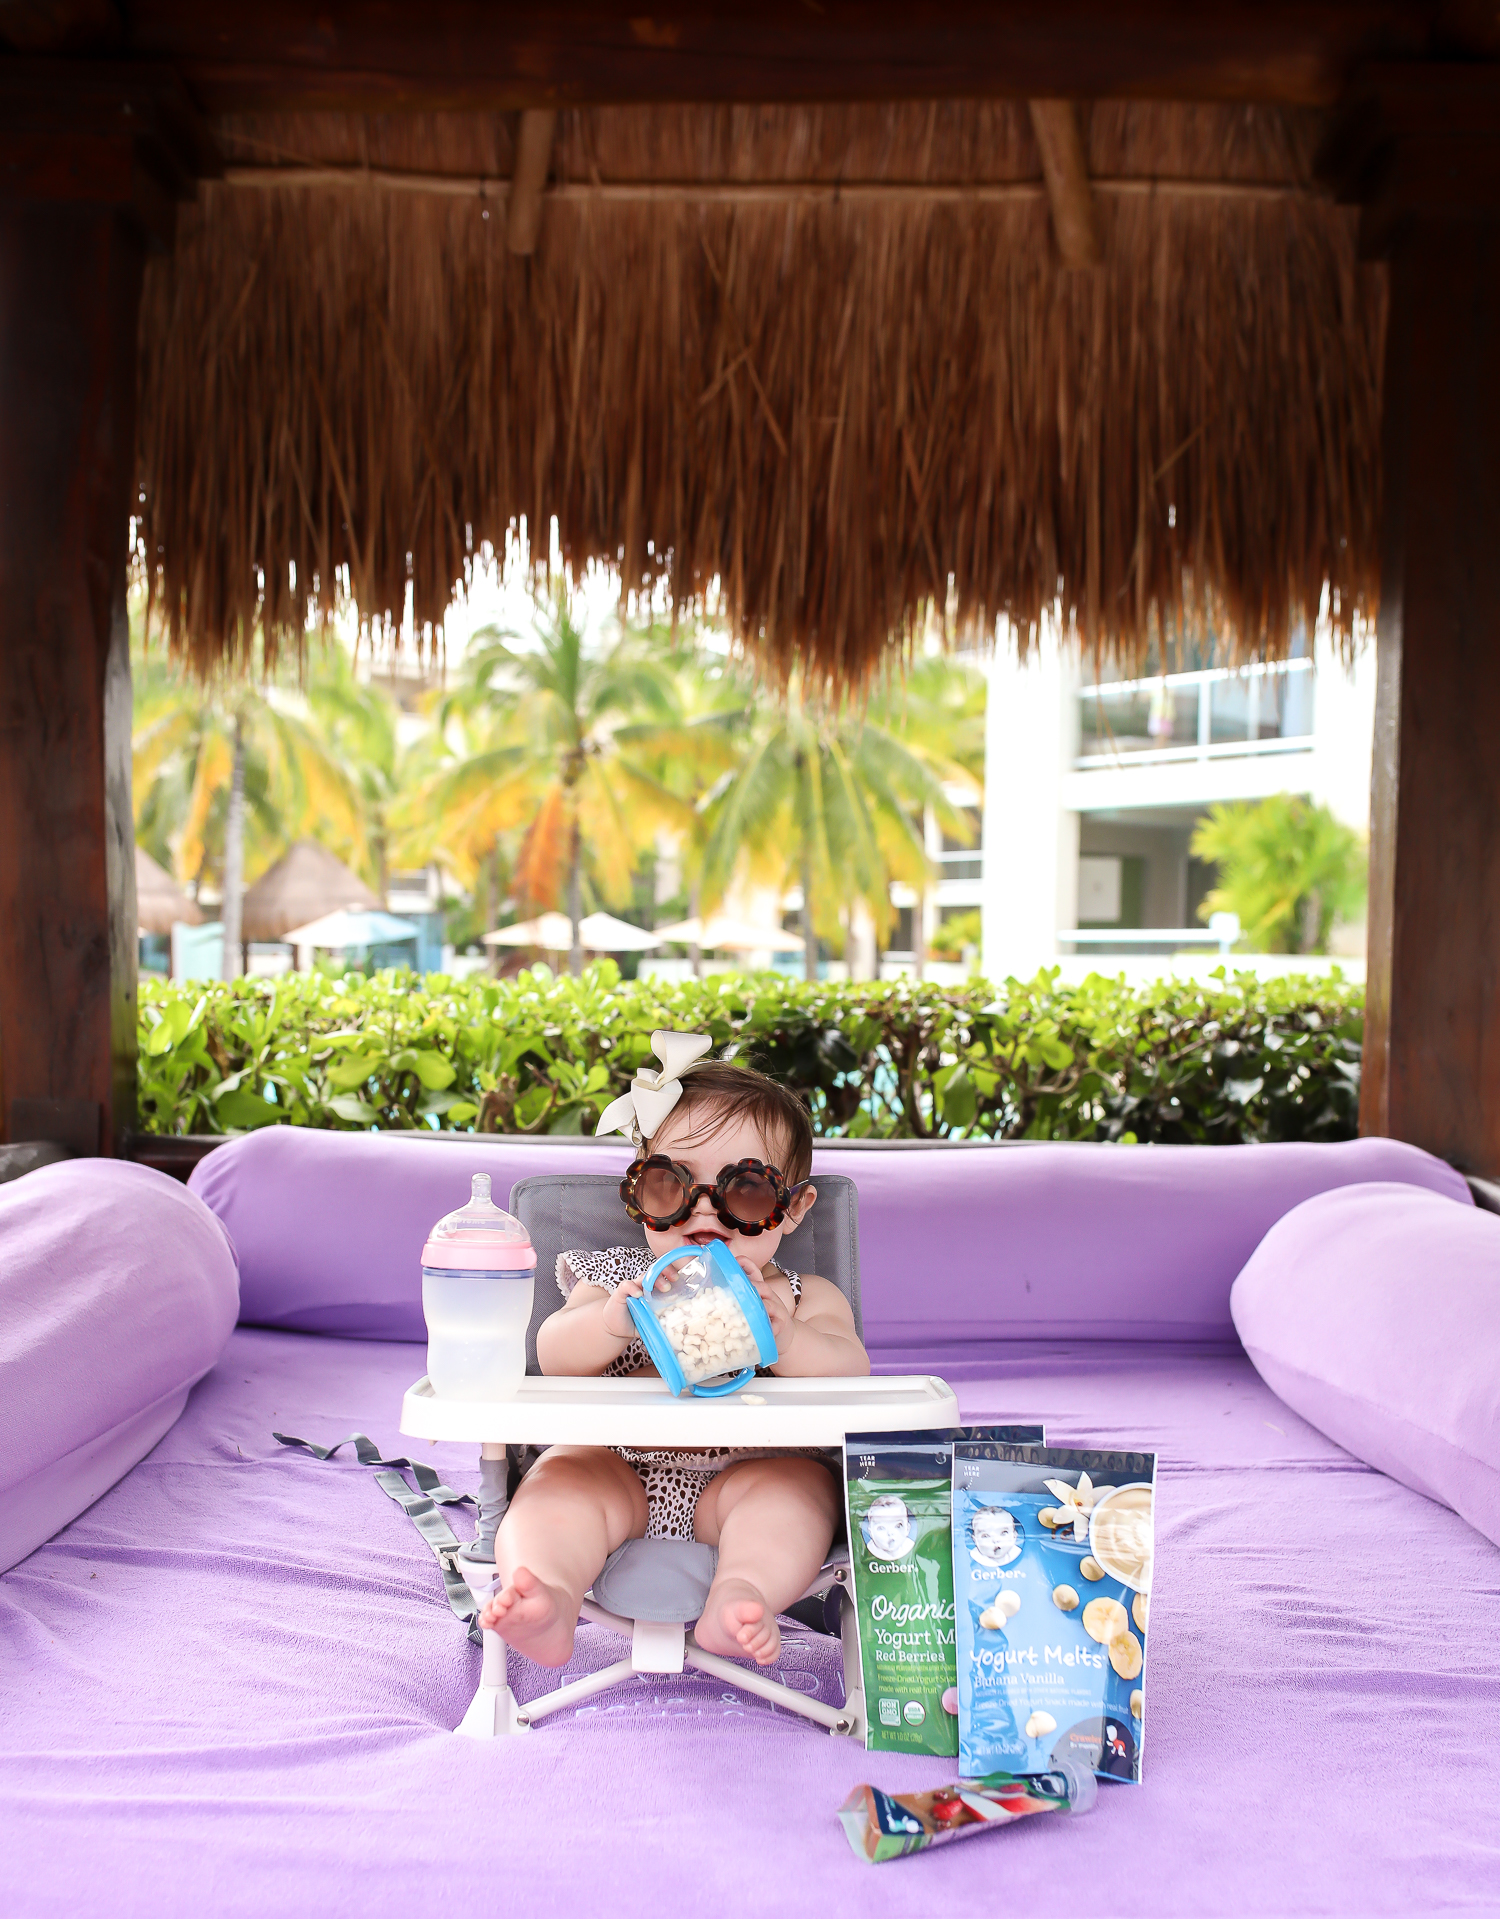 Christmas In Cancun🌟🎄🎁 [+ A Few Baby Travel Must-Haves] by popular Oklahoma travel blog, The Sweetest Thing: image of a baby in Cancun, Mexico sitting in a Walmart hiccapop Omniboost Travel Booster Seat with Tray for Baby holding a Walmart Munchkin Snack Catcher Snack Cup with Gerber Puff cereal snack inside, with a bottle resting on her high chair tray and some Gerber Organic Yogurt melts next to her high chair.